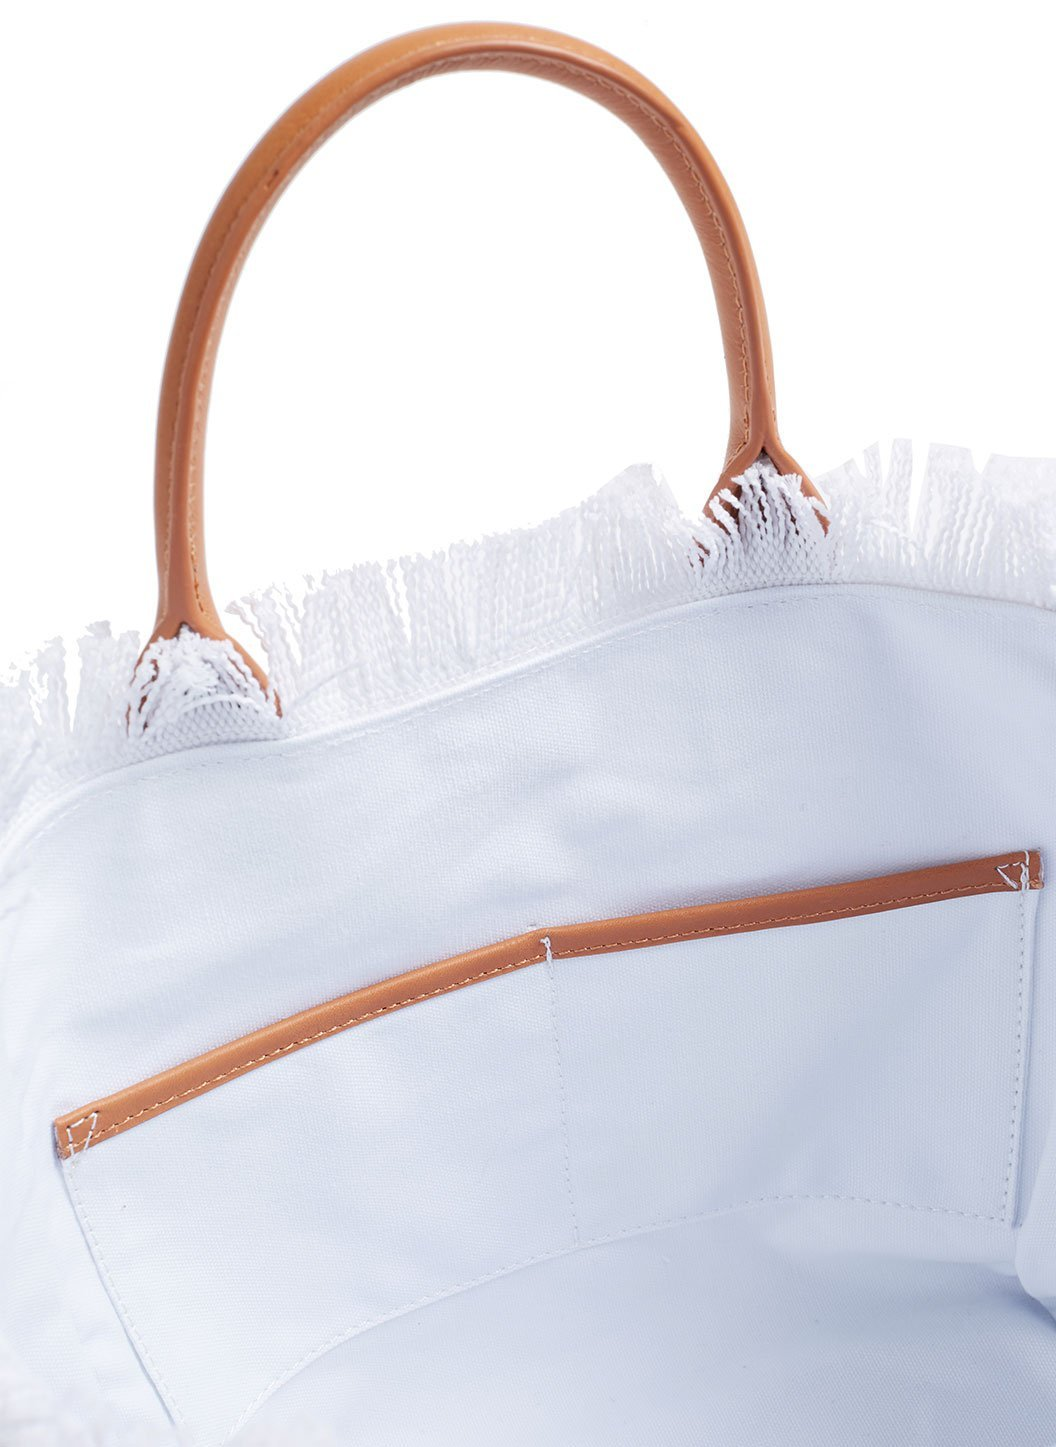 porto cervo mini beach tote white 4 2018